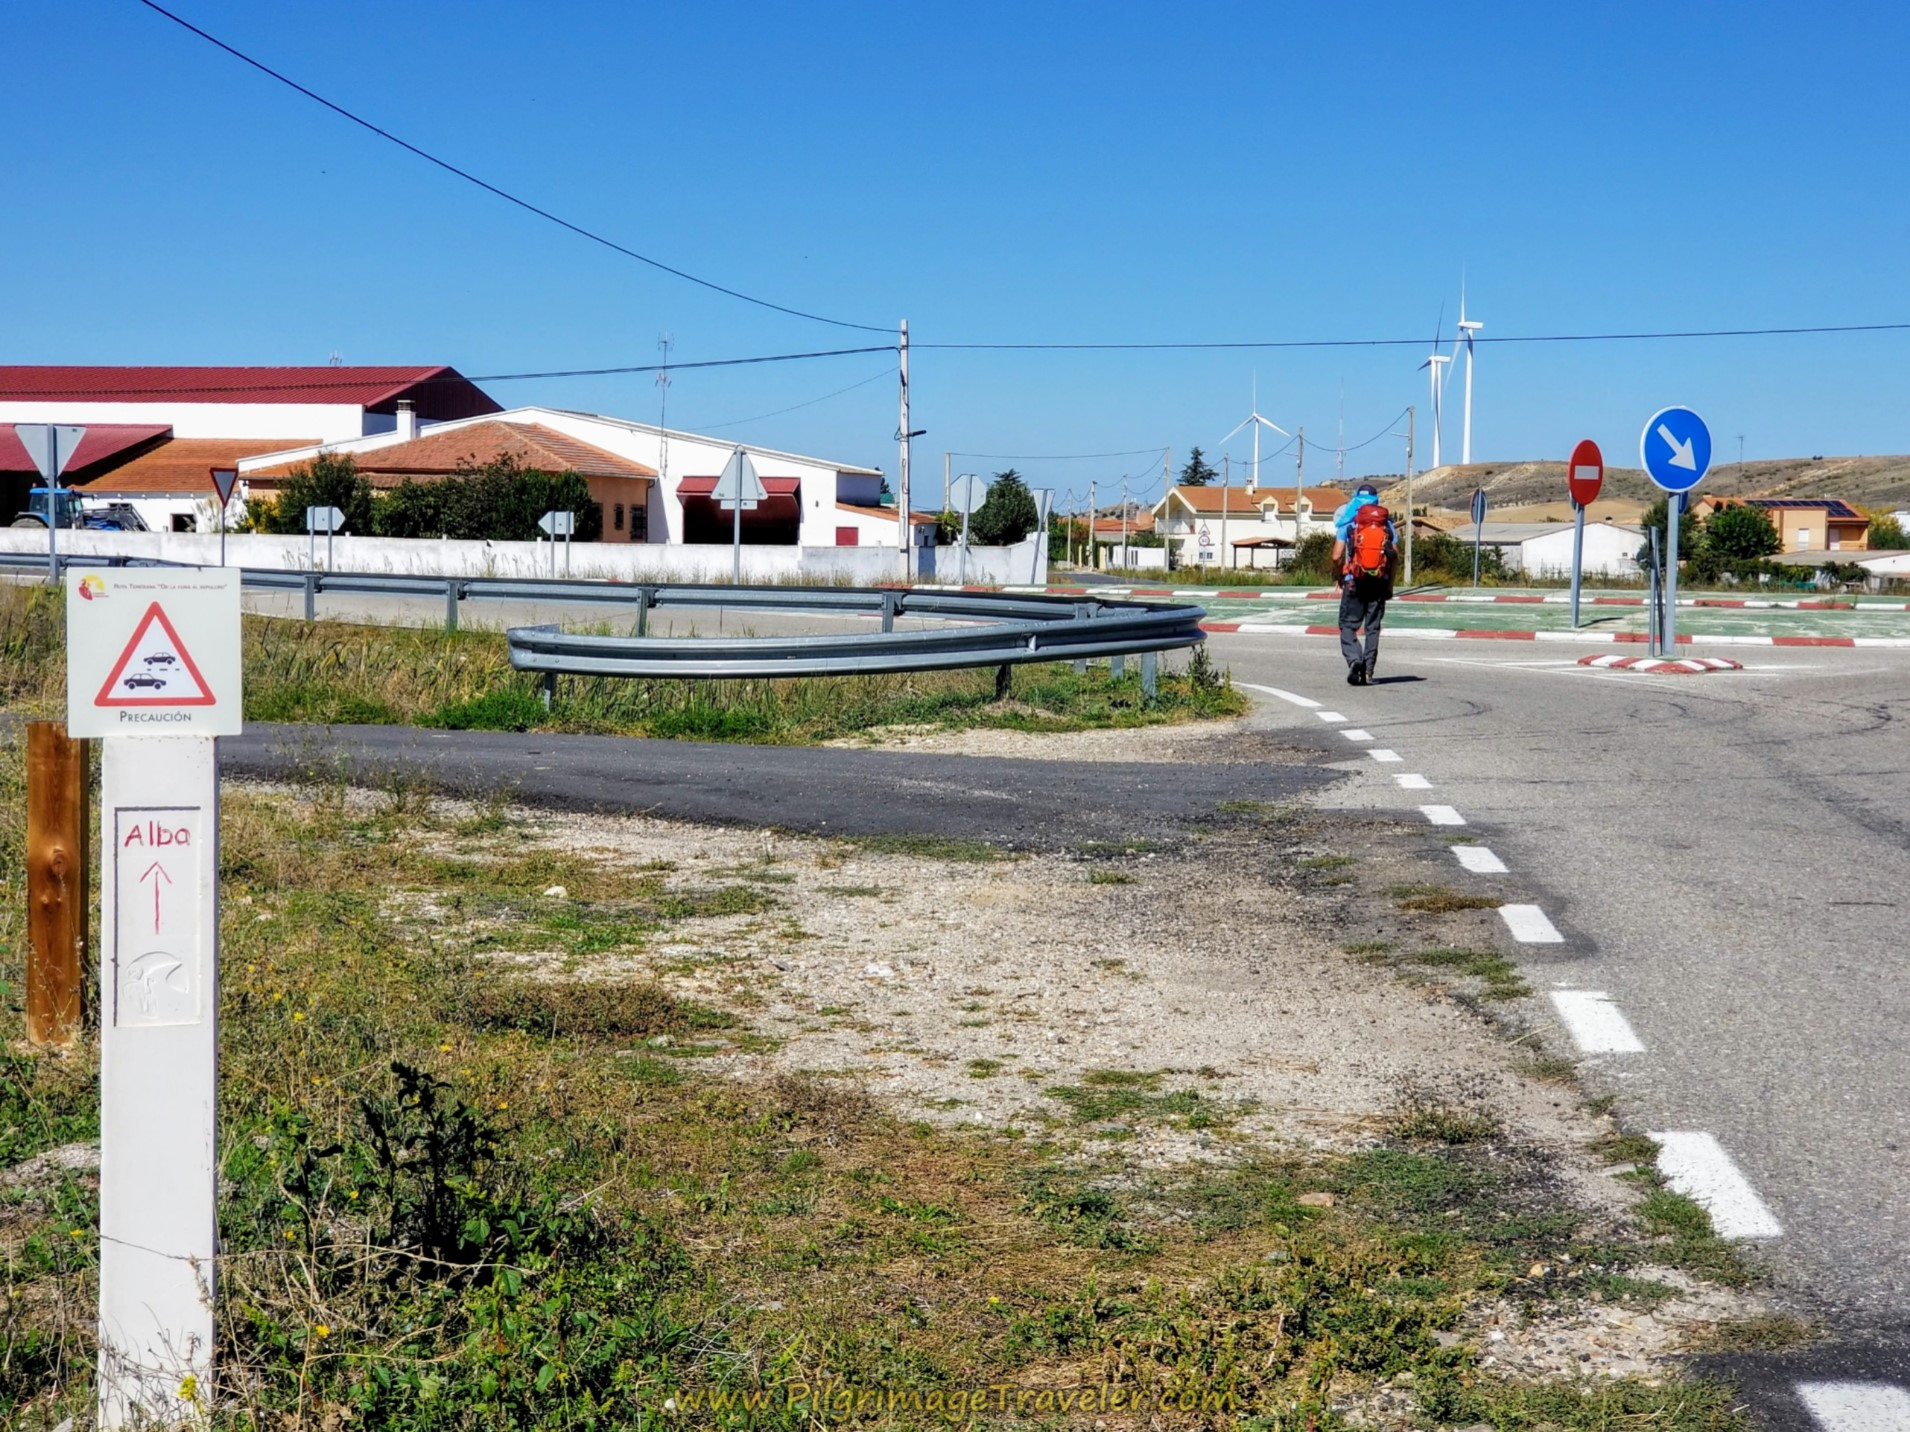 Enter Garcihernández at Roundabout